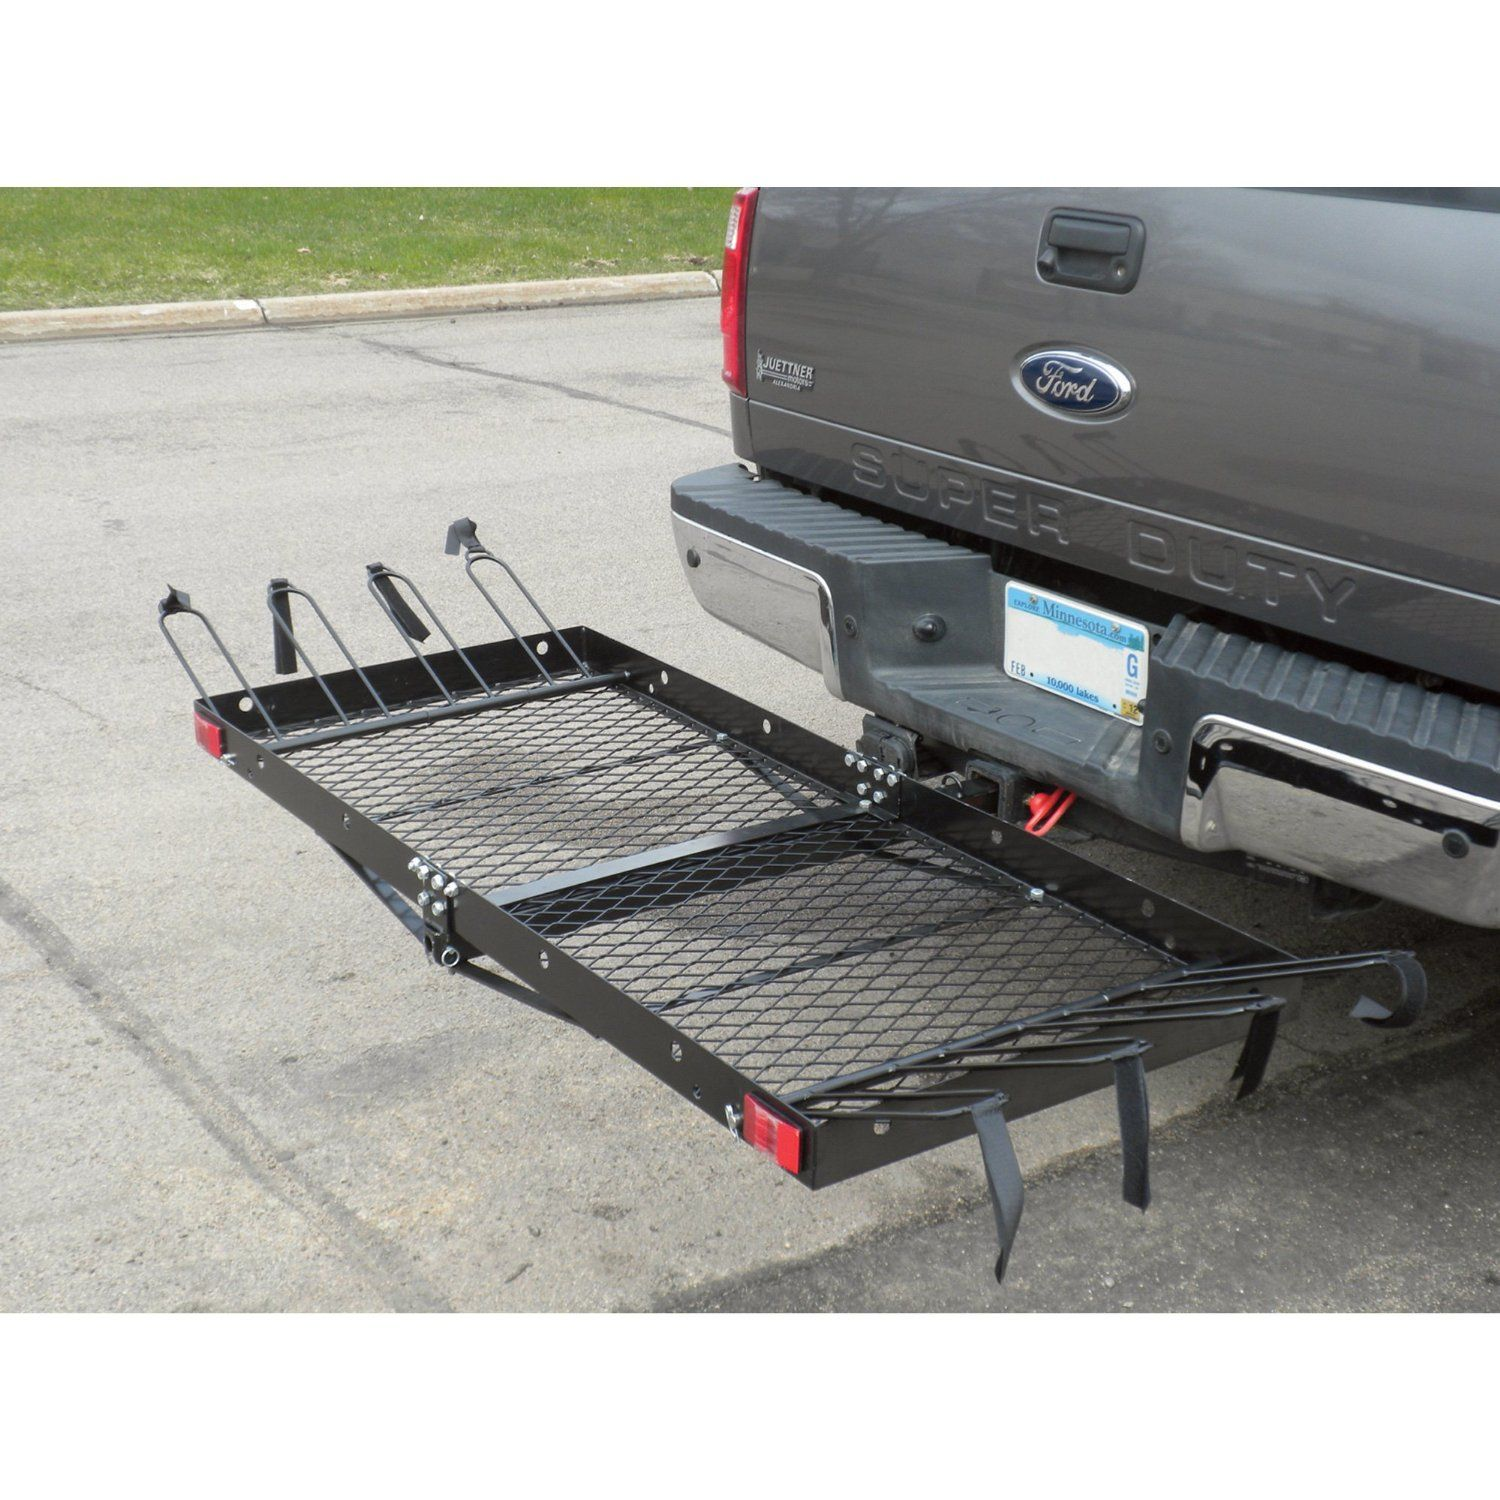 Trailer Hitch Luggage Rack Endearing Amazon Cargo Carrier With Bike Rack Automotive  Квадрат И Decorating Design